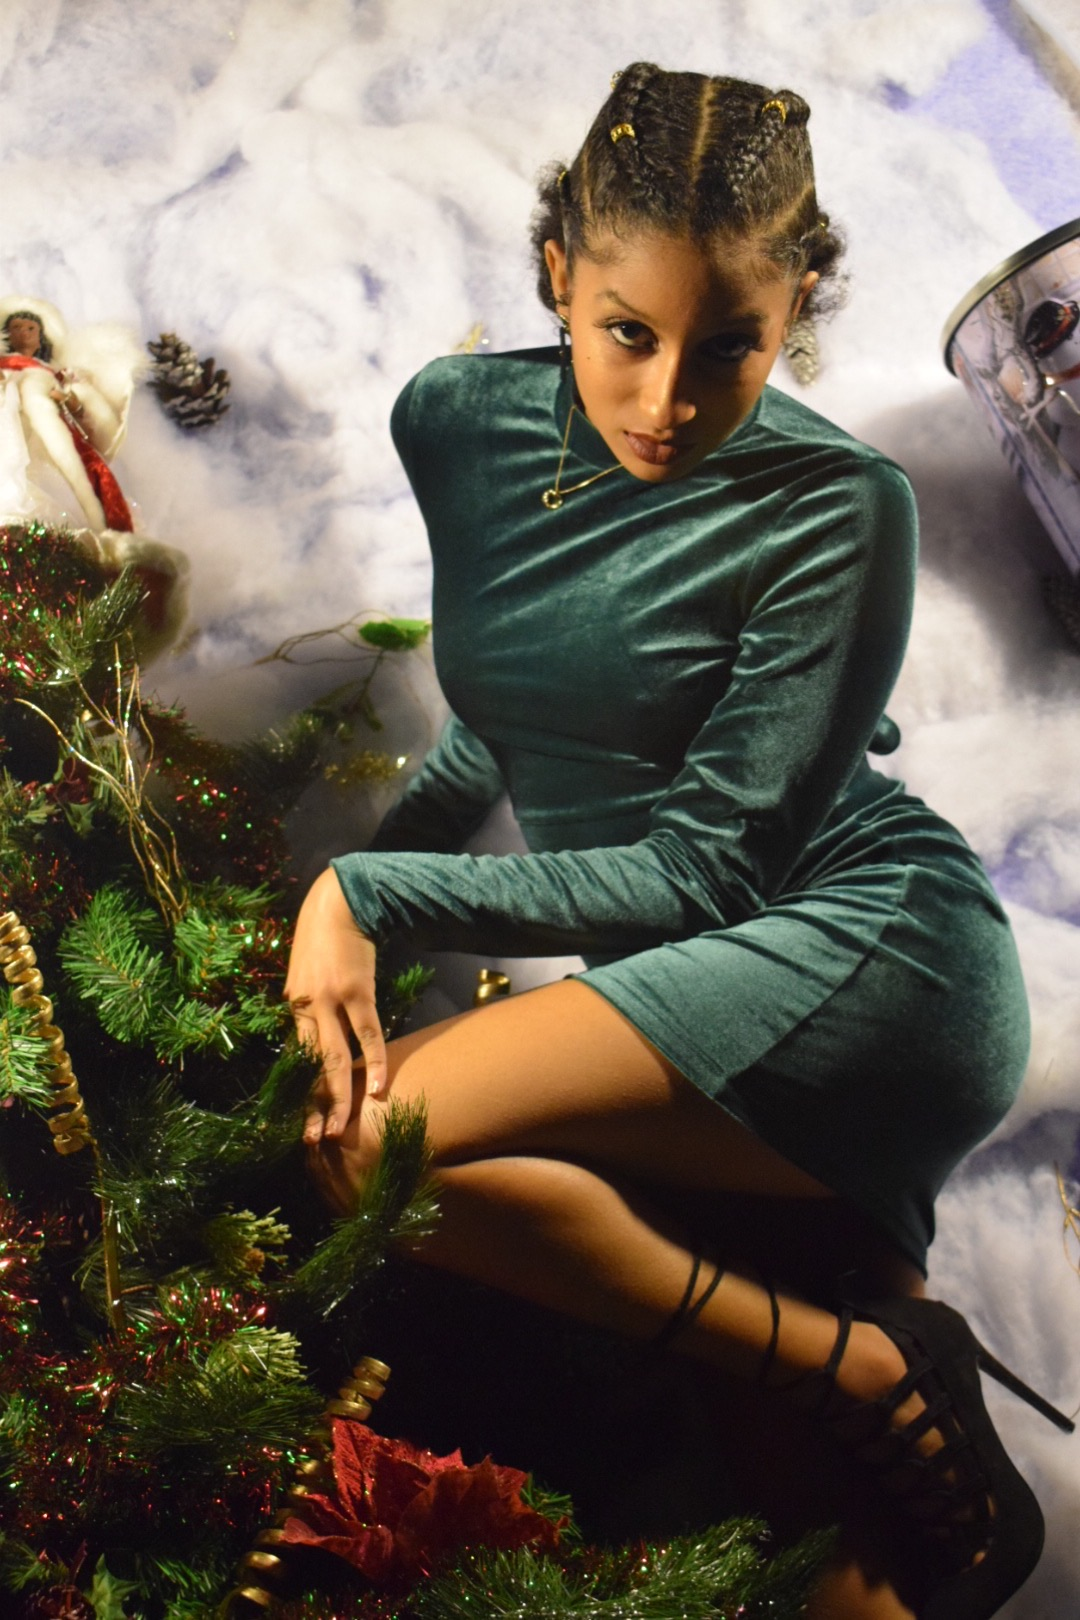 My first annual Christmas shoot with The Carmen J.